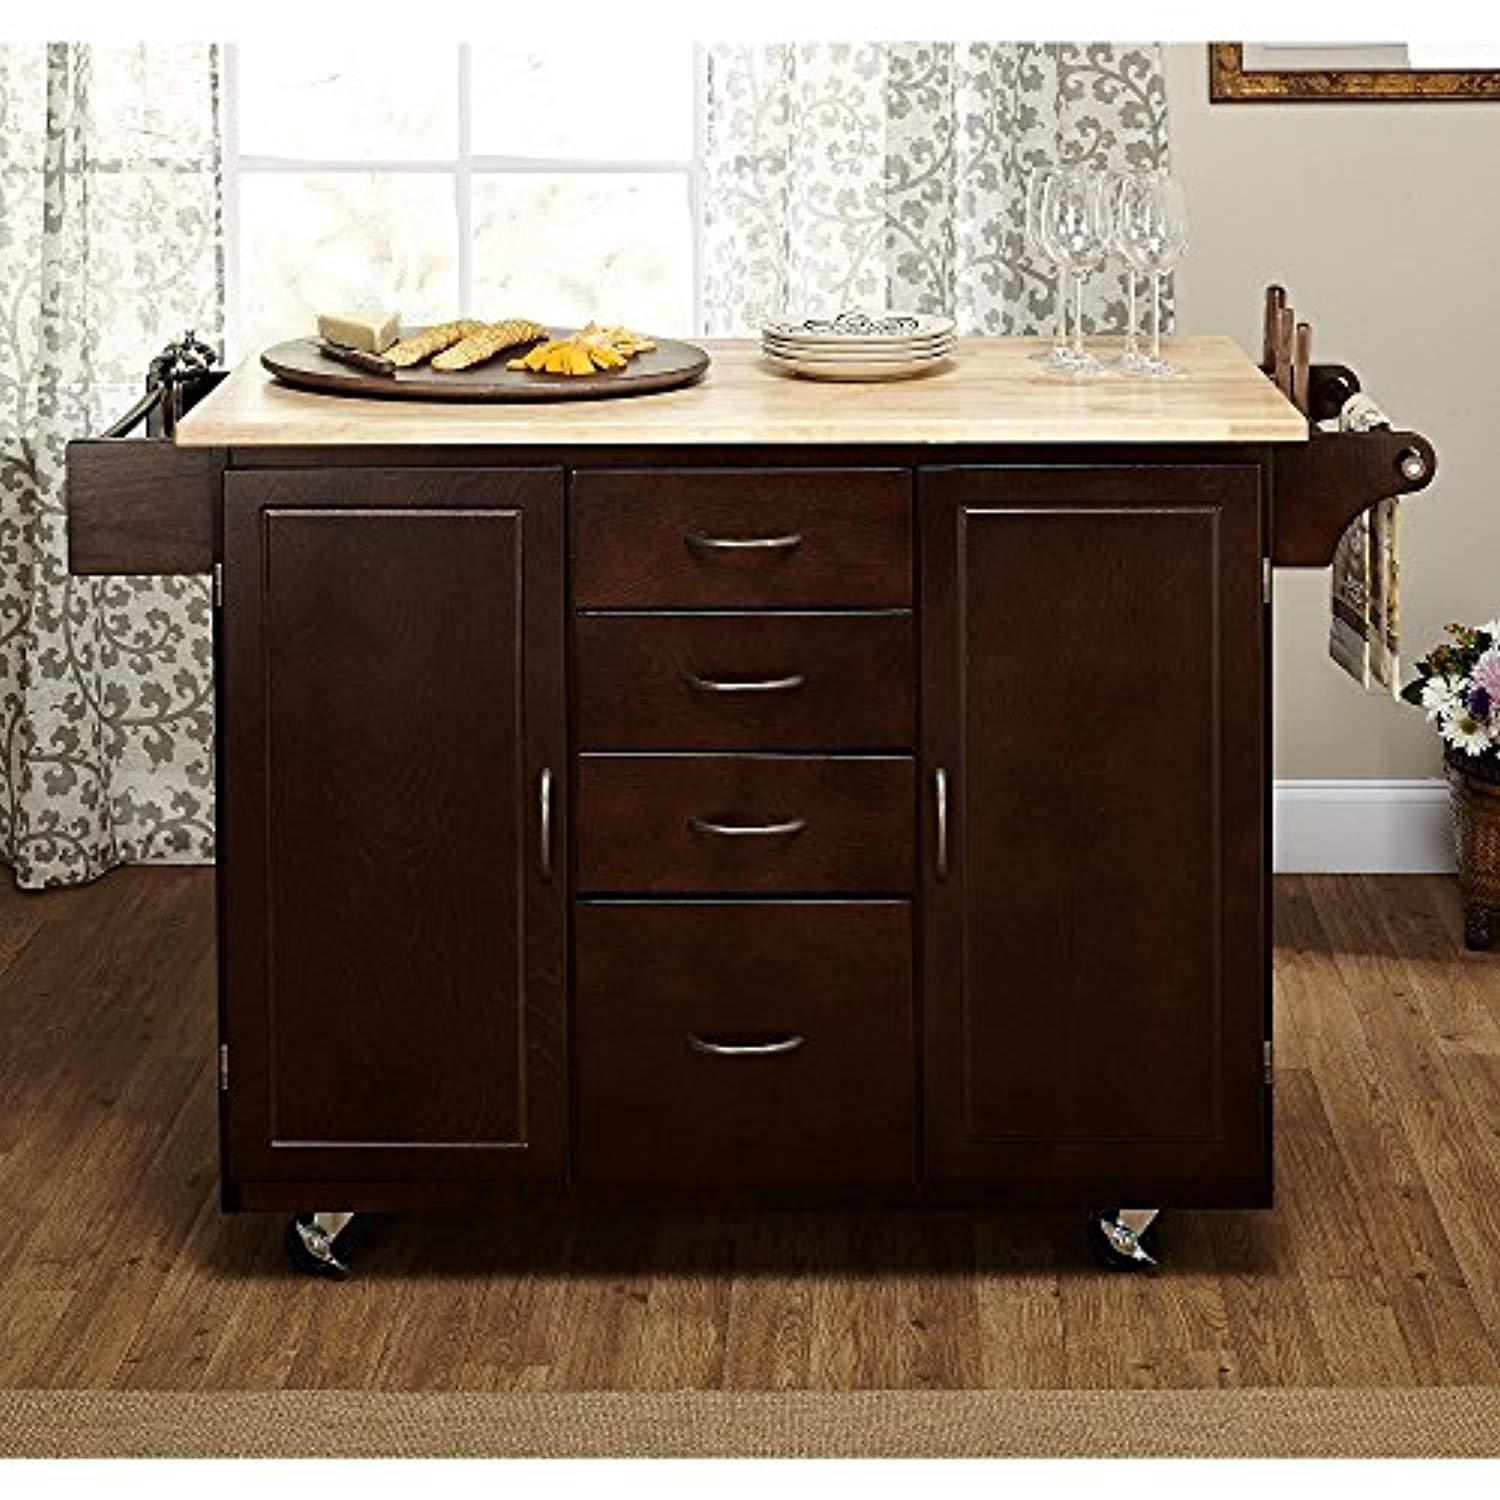 Country Mobile Island Kitchen Cart